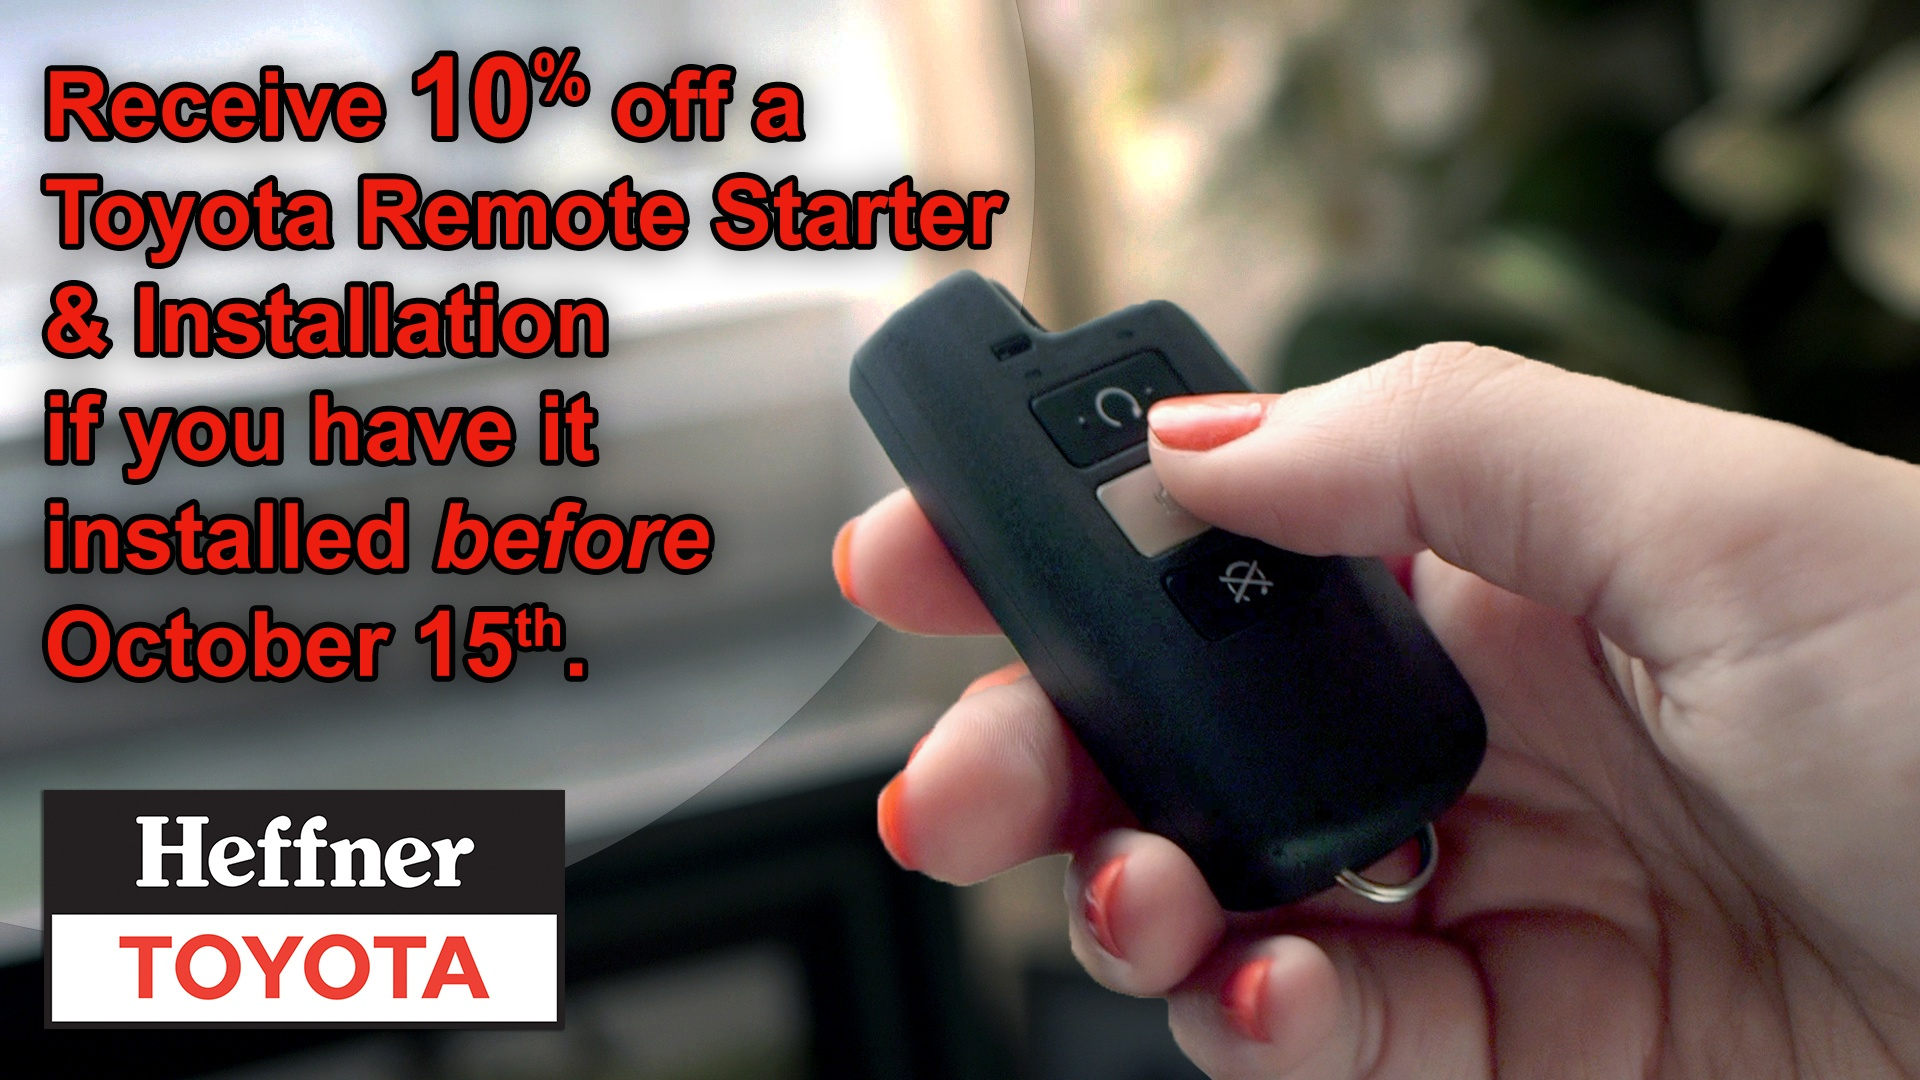 10% of Toyota Remote Starter